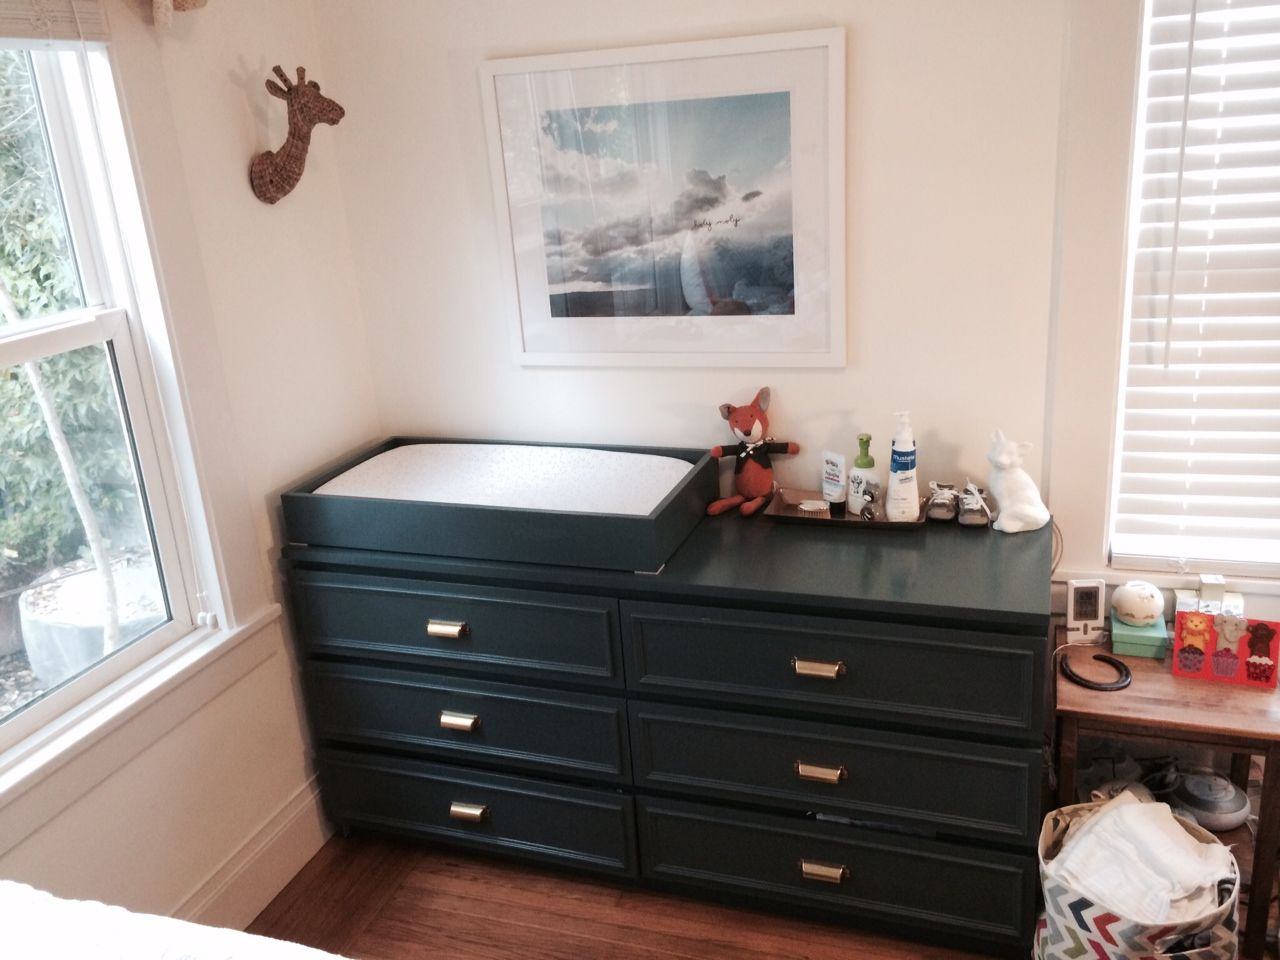 Ikea Malm Dresser Hack Changing Table DIY w/ brass pulls | Baby P ...